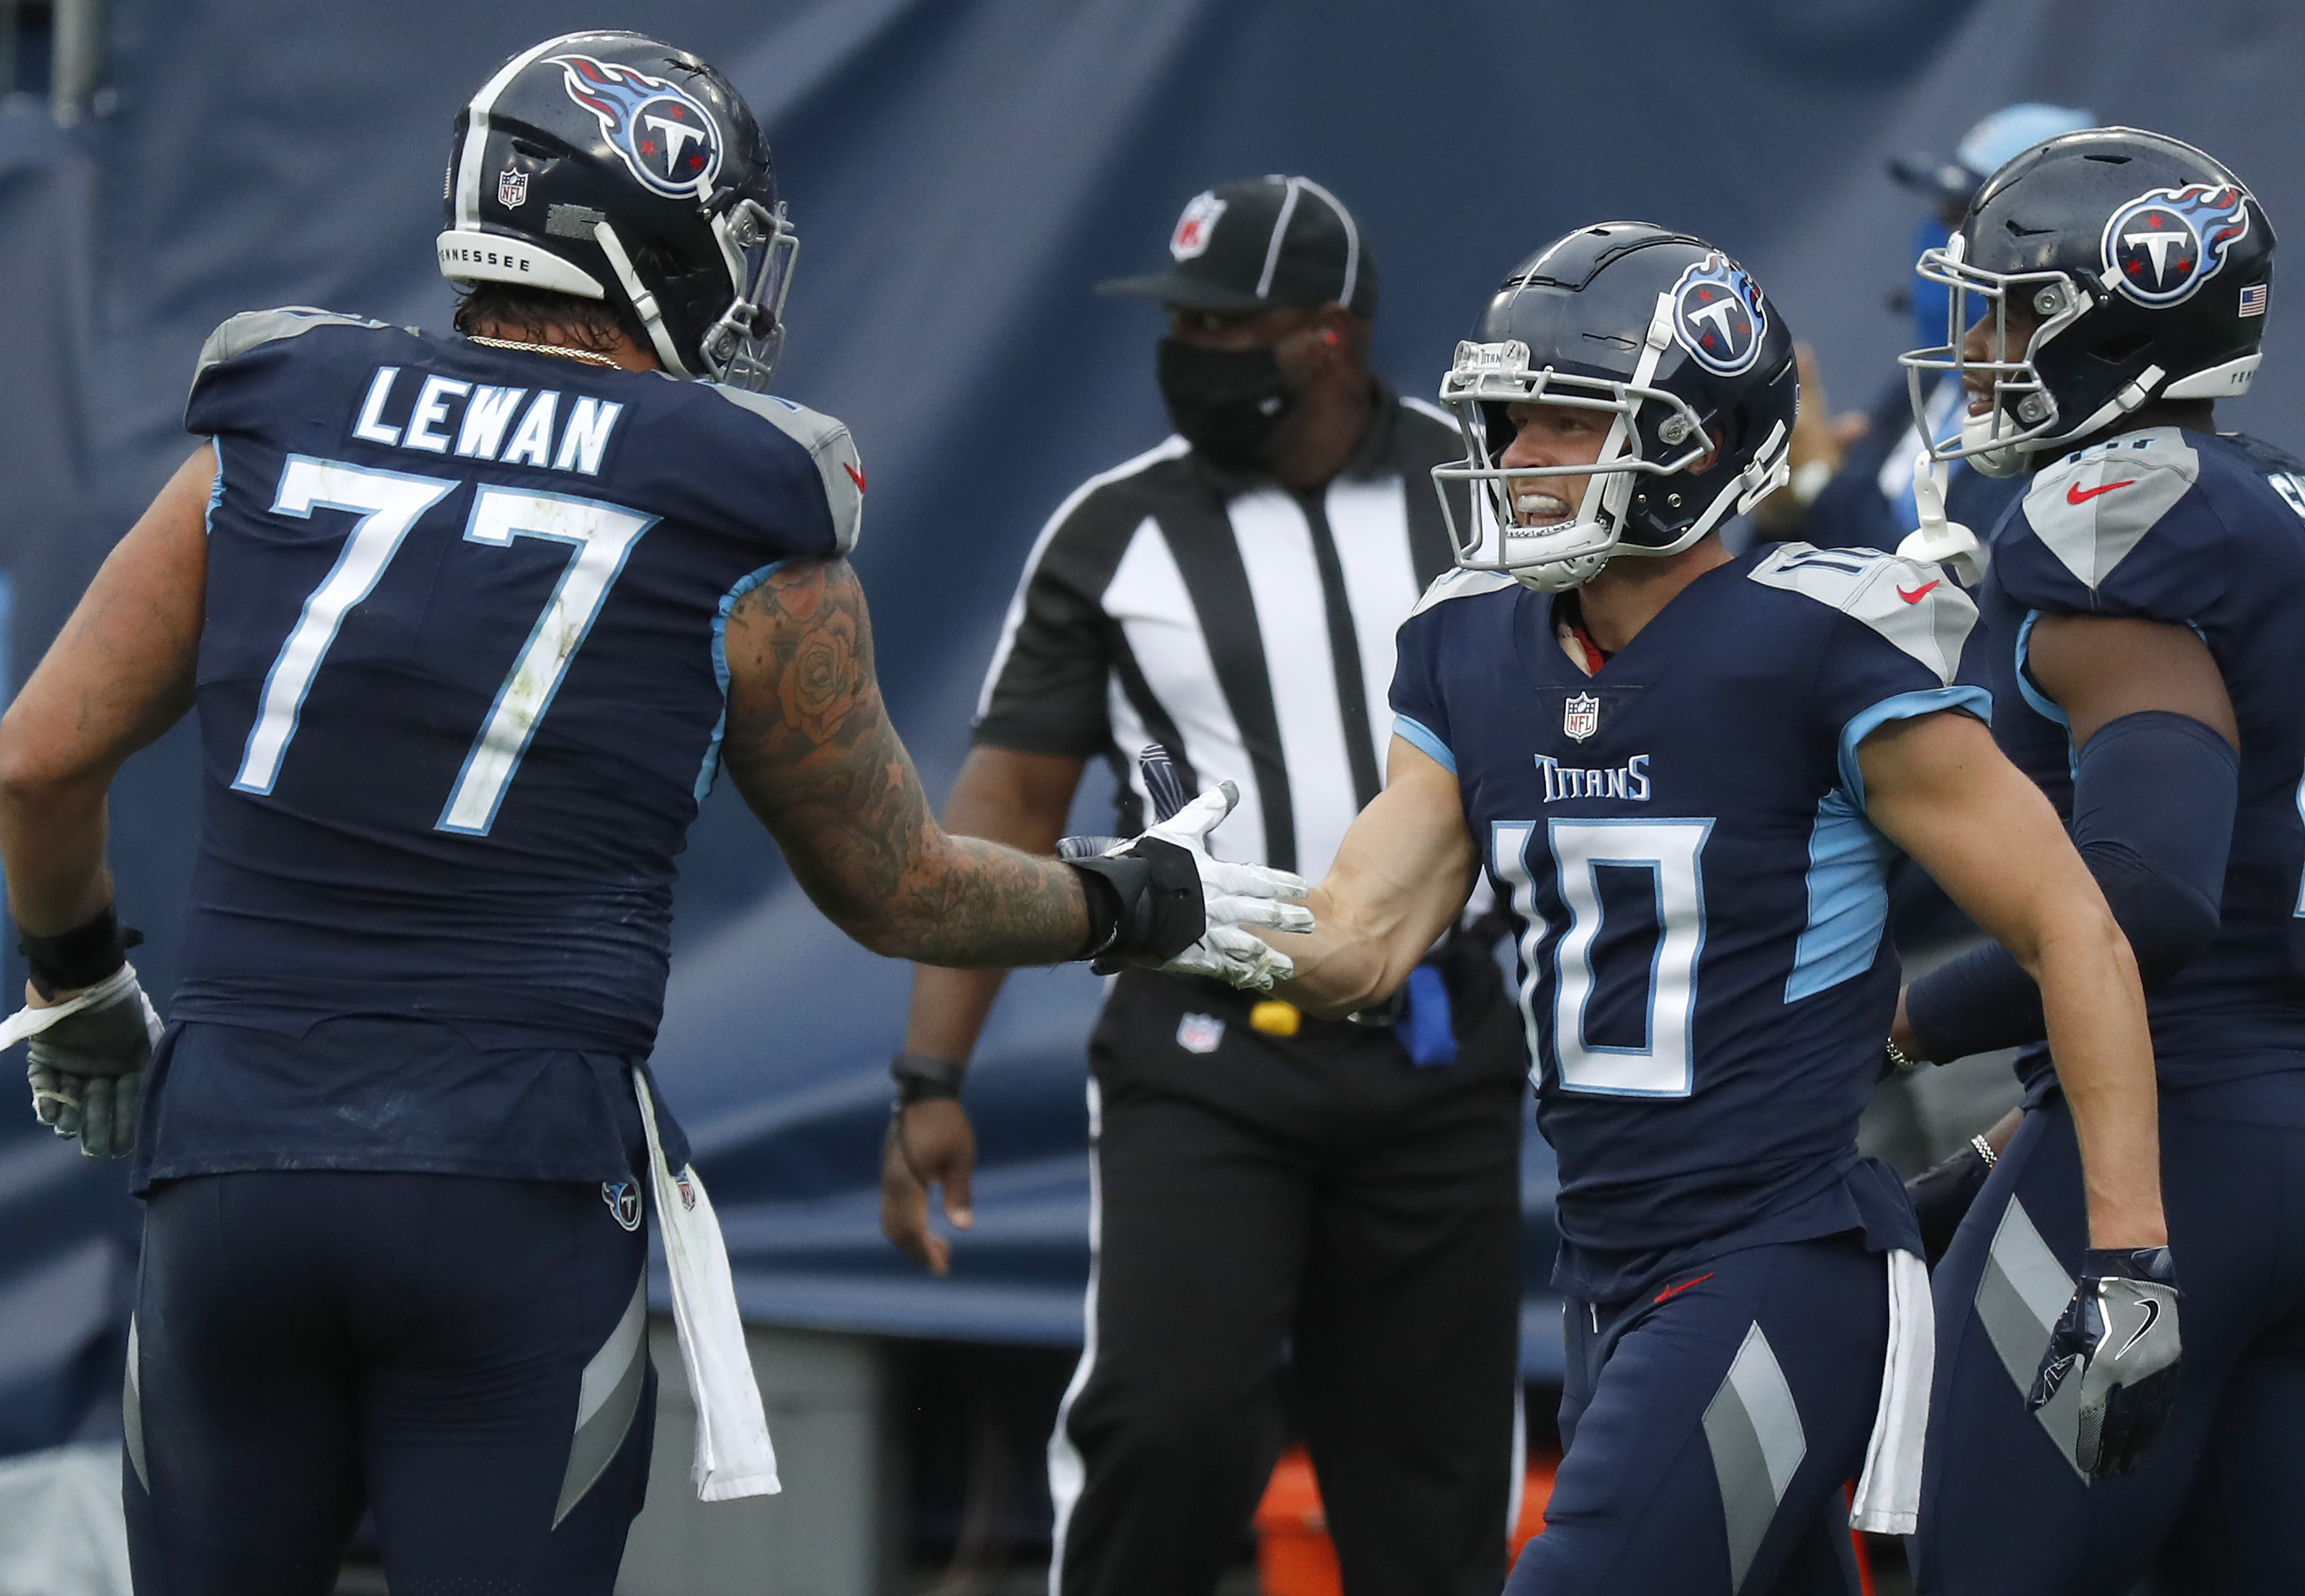 Taylor Lewan suffered a season-ending ACL injury Sunday.